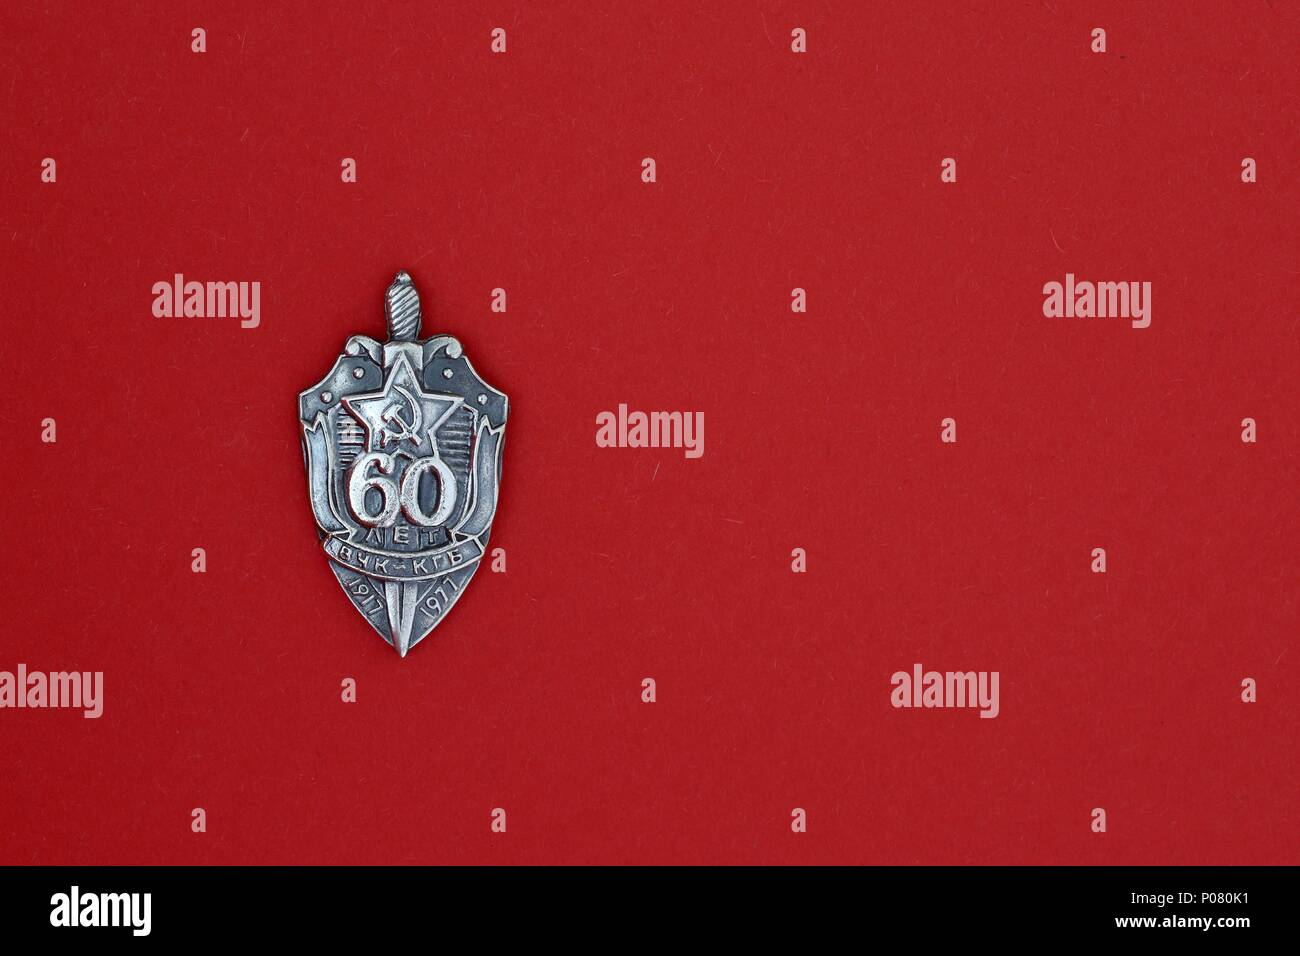 Single KGB badge commemorating 60 years anniversary. - Stock Image